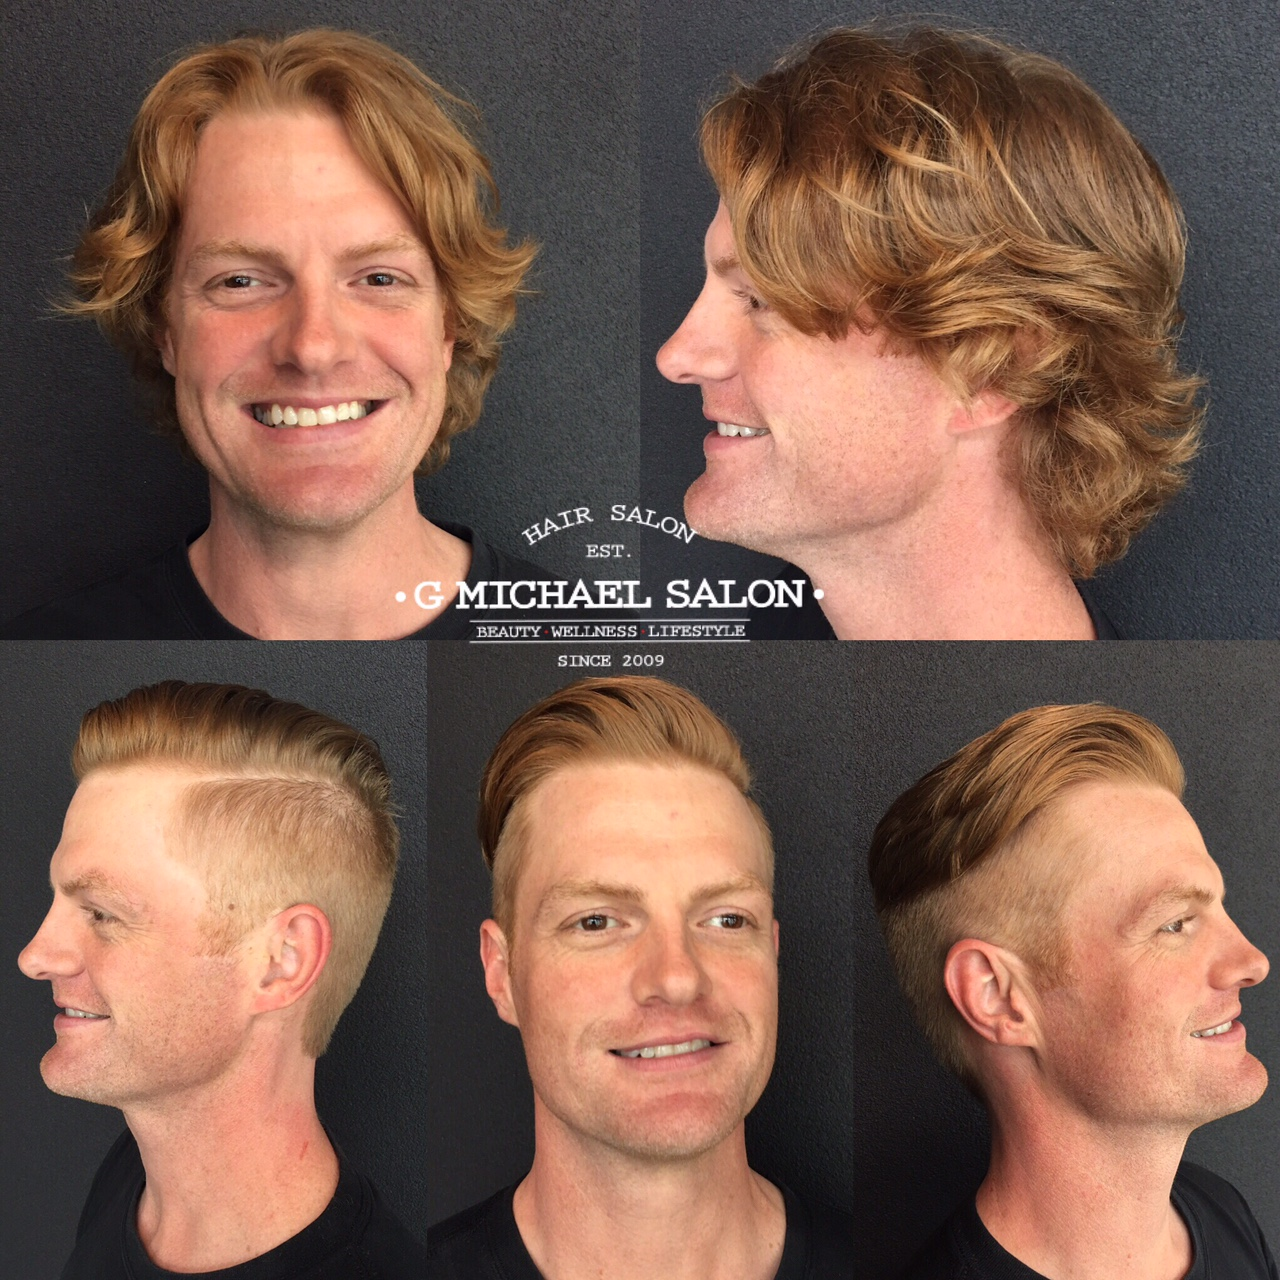 Great Before and After Men's Haircuts by G Michael Salon